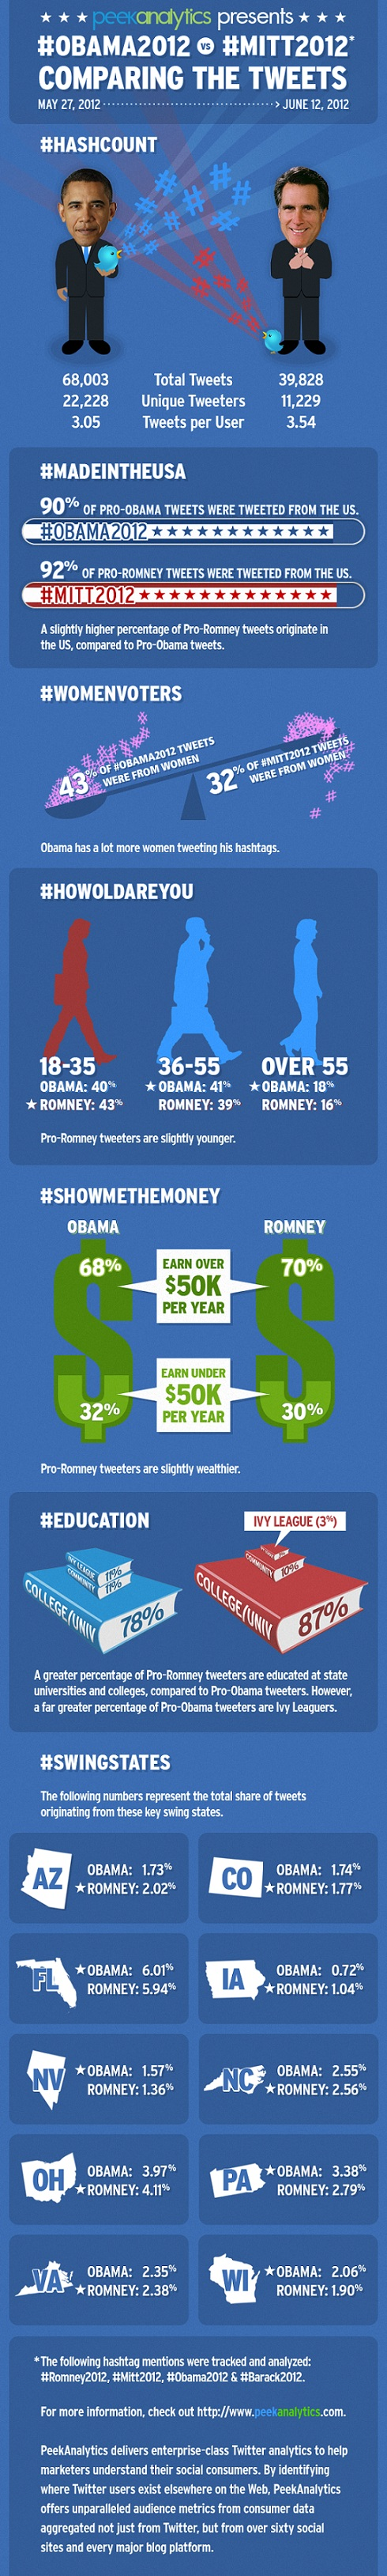 Obama And Romney: Social Media Battle For The Presidency [Infographic]